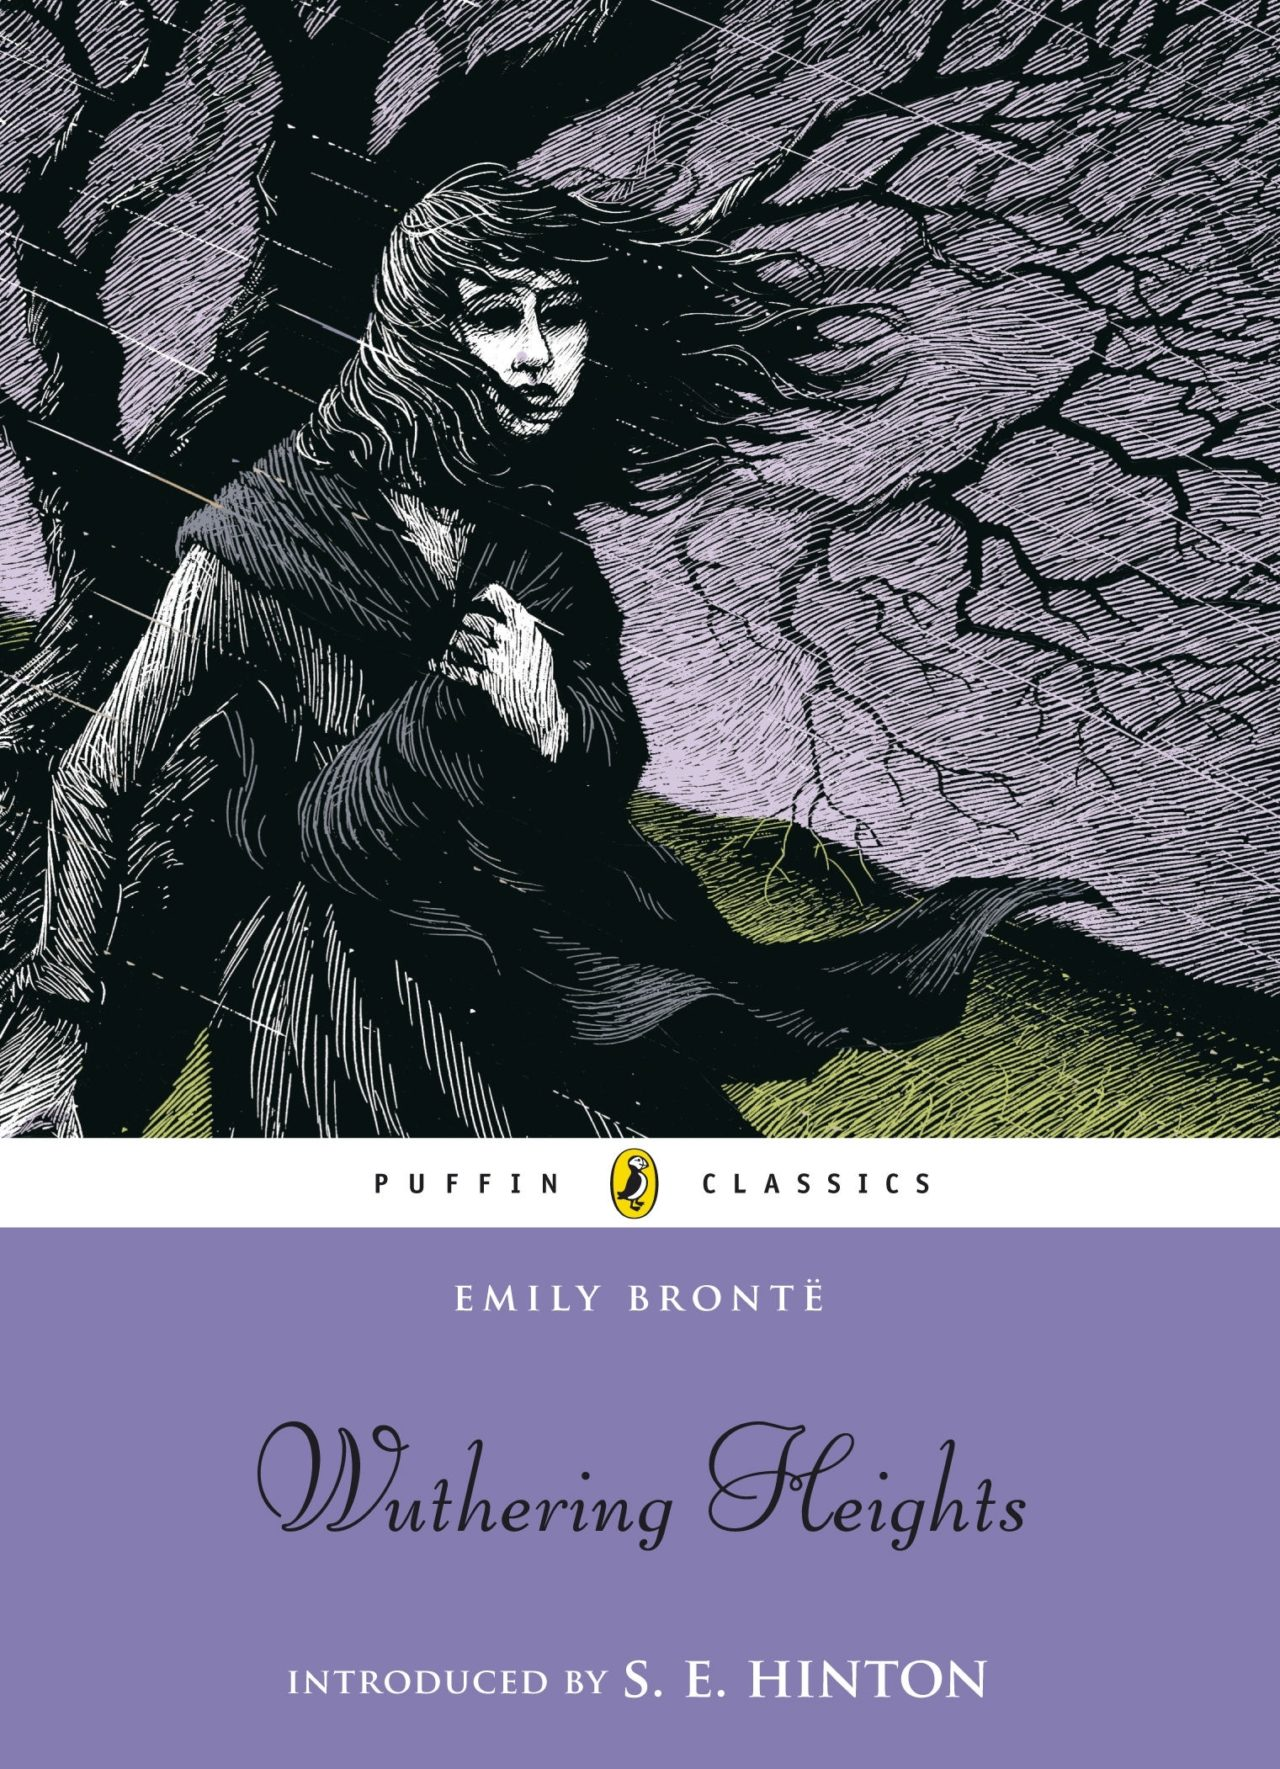 a short summary of emily brontes novel wuthering heights A single page synopsis of the story of wuthering heights including a single paragraph summary a brief summary many people, generally those who have never read the book, consider wuthering heights to be a straightforward, if intense, love story — romeo and juliet on the yorkshire moors.